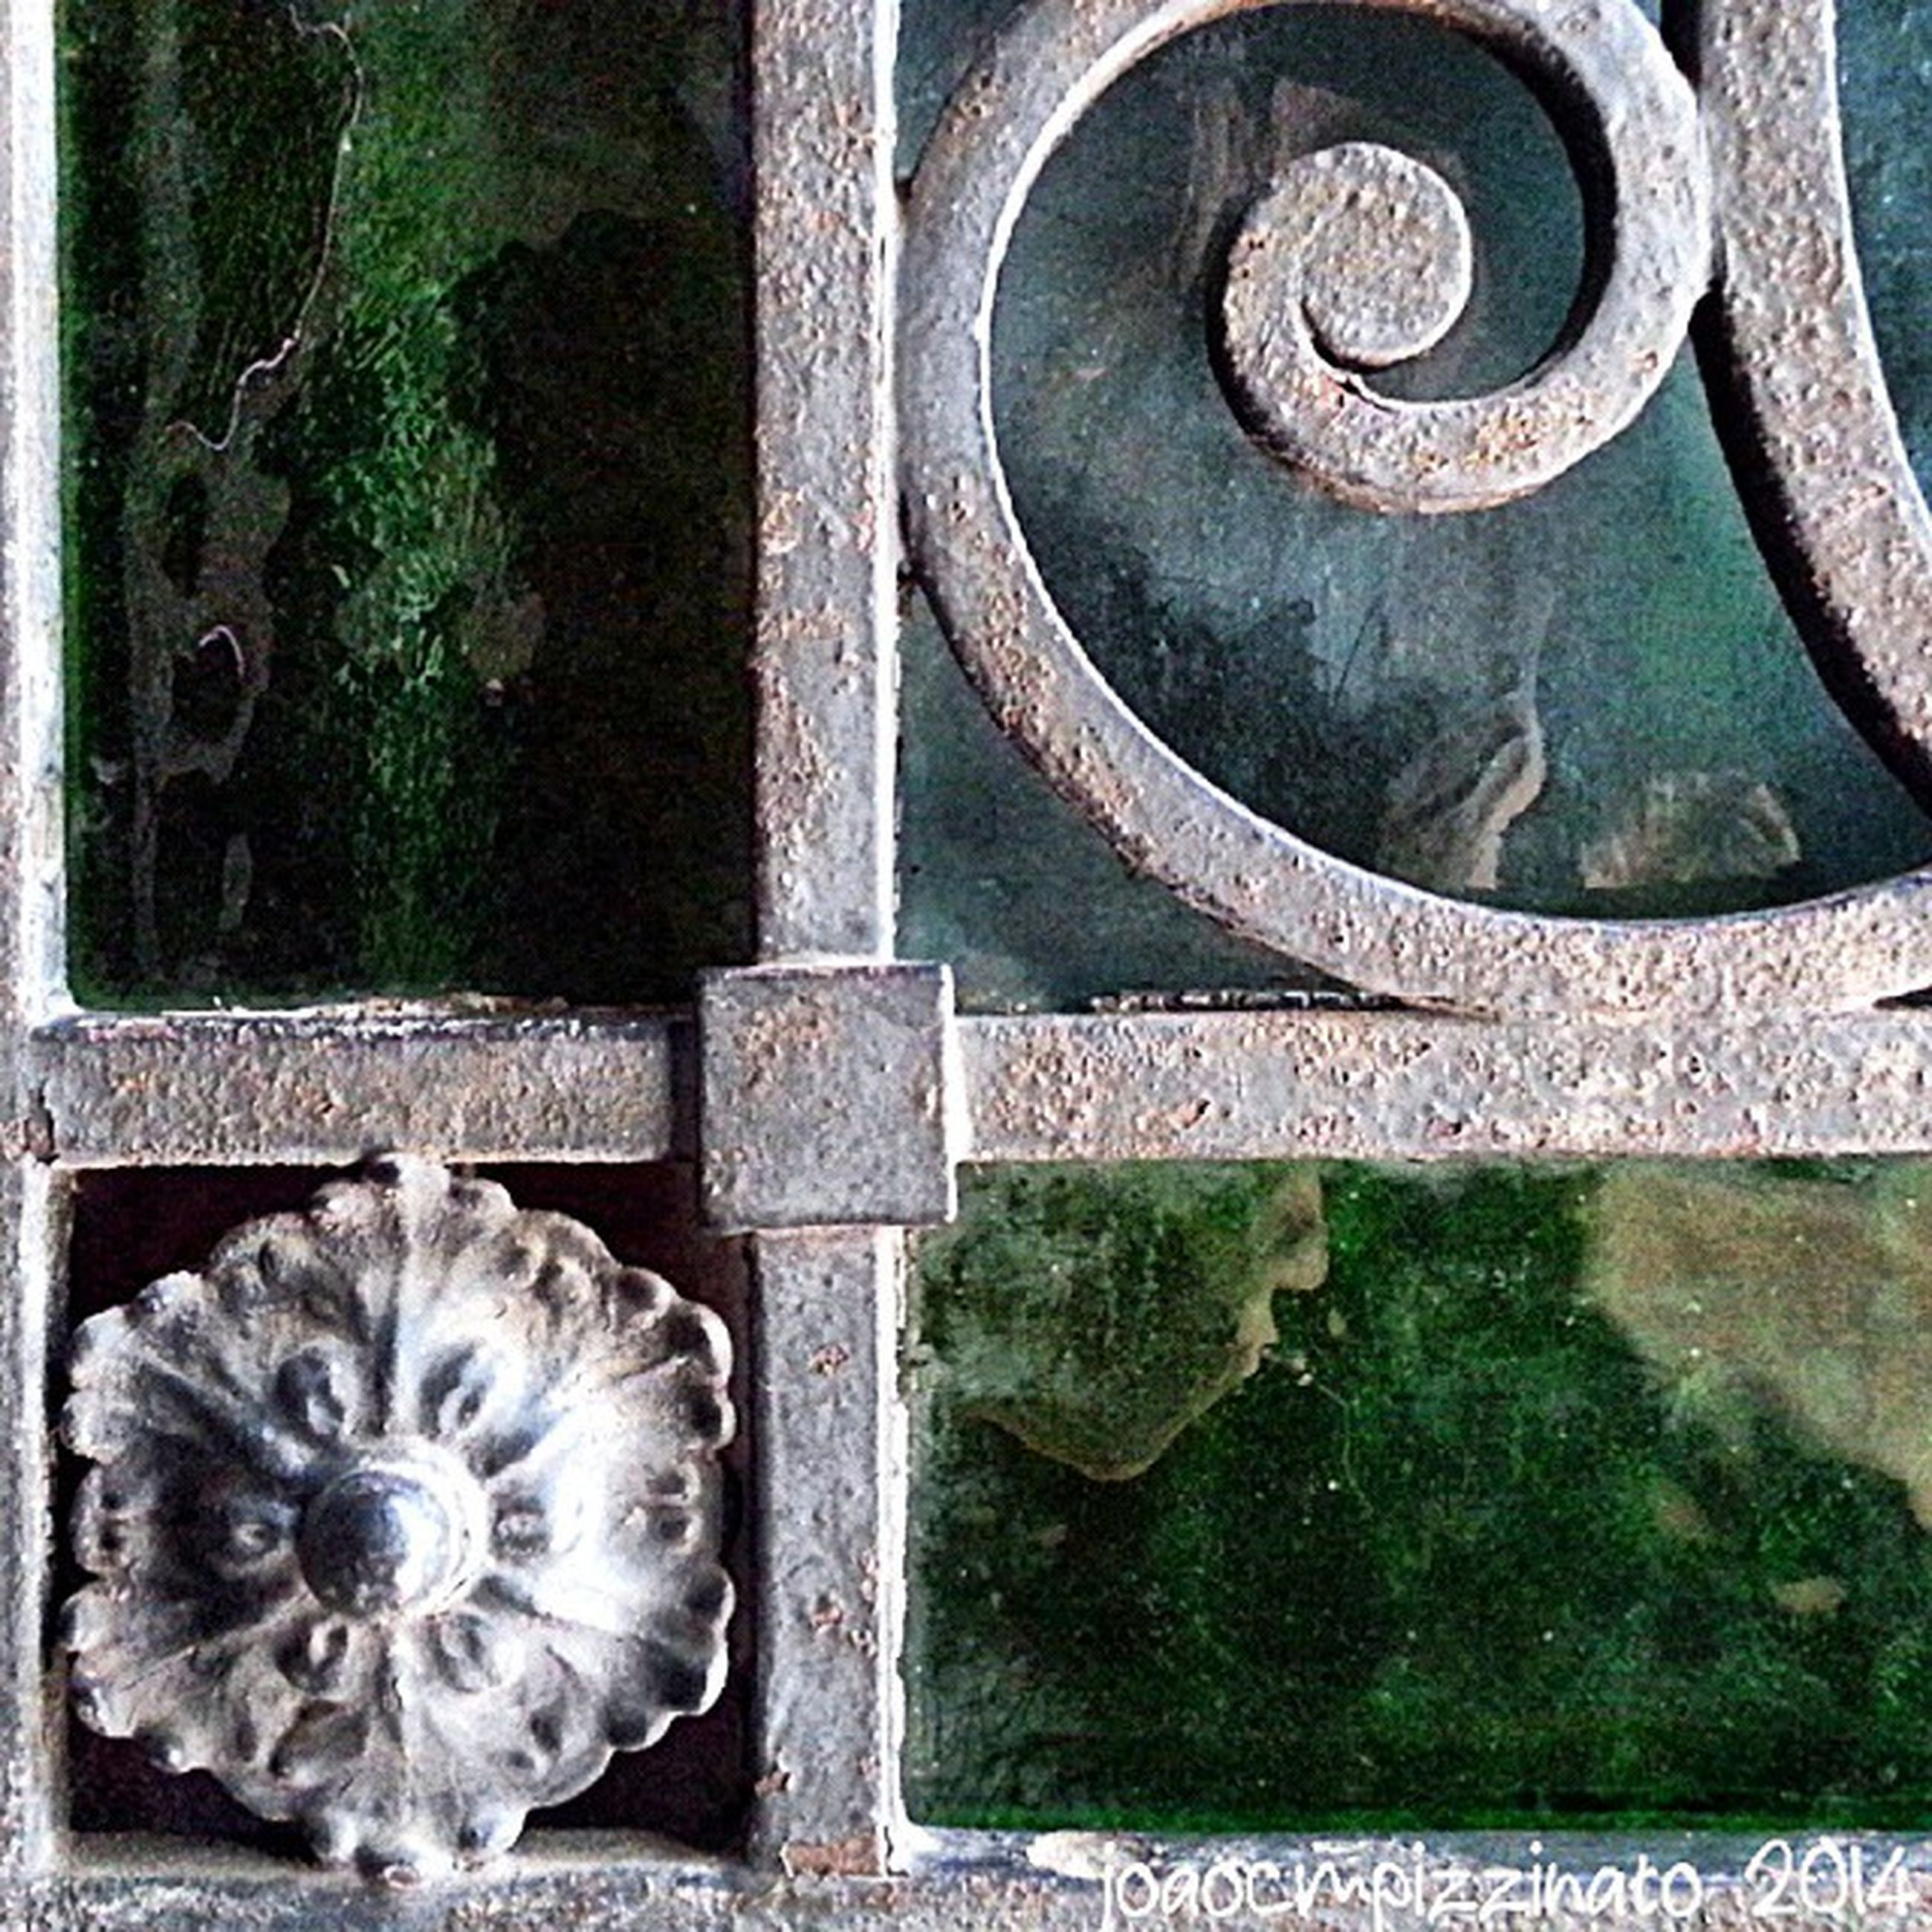 close-up, metal, plant, built structure, old, outdoors, day, no people, wood - material, park - man made space, railing, art, art and craft, front or back yard, growth, flower, circle, rusty, gate, architecture